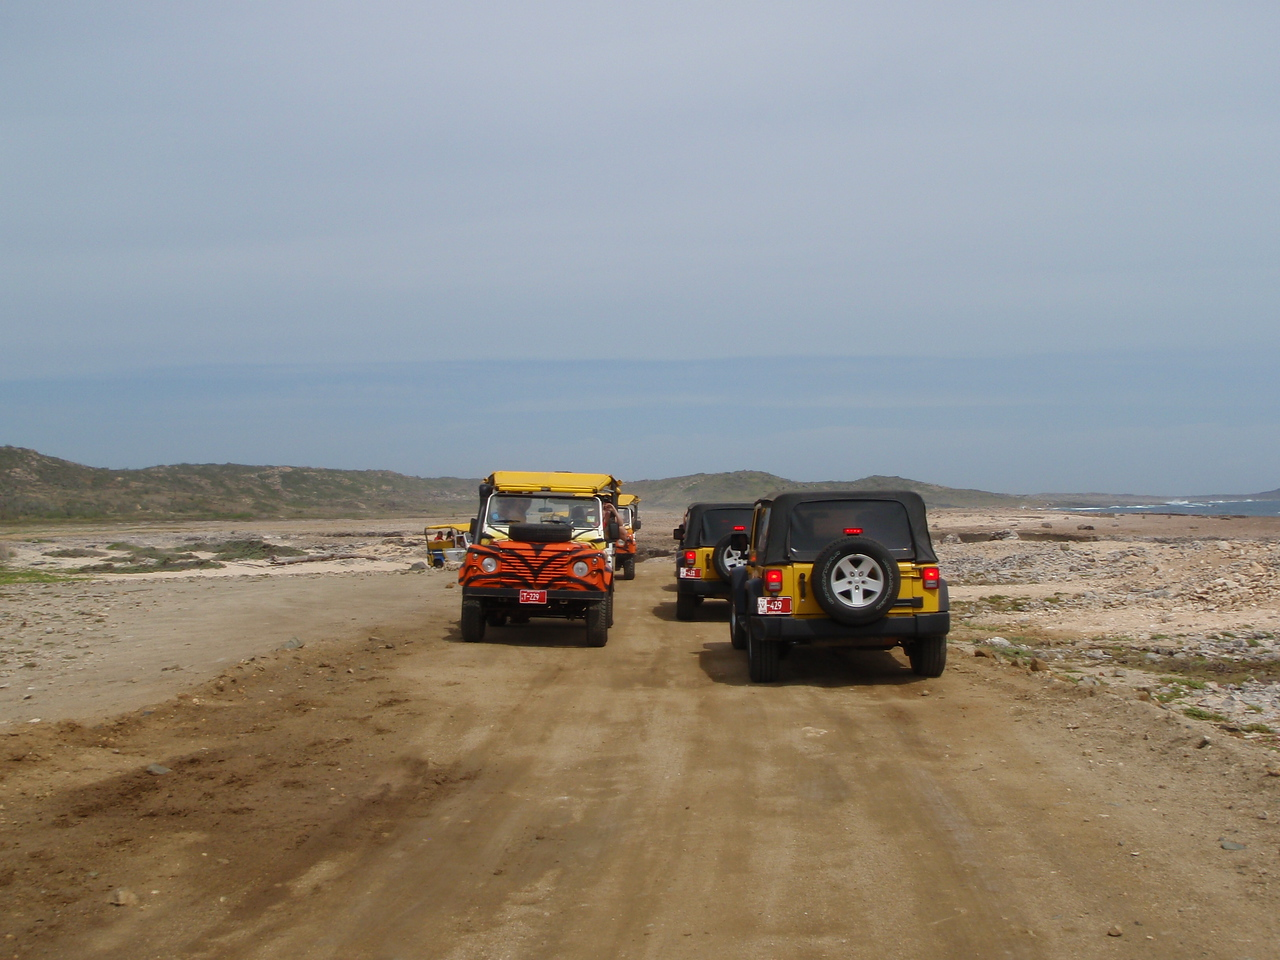 We conitinue along the sandy flats of the coast.  Here we meet another jeep tour headed in the other direction.